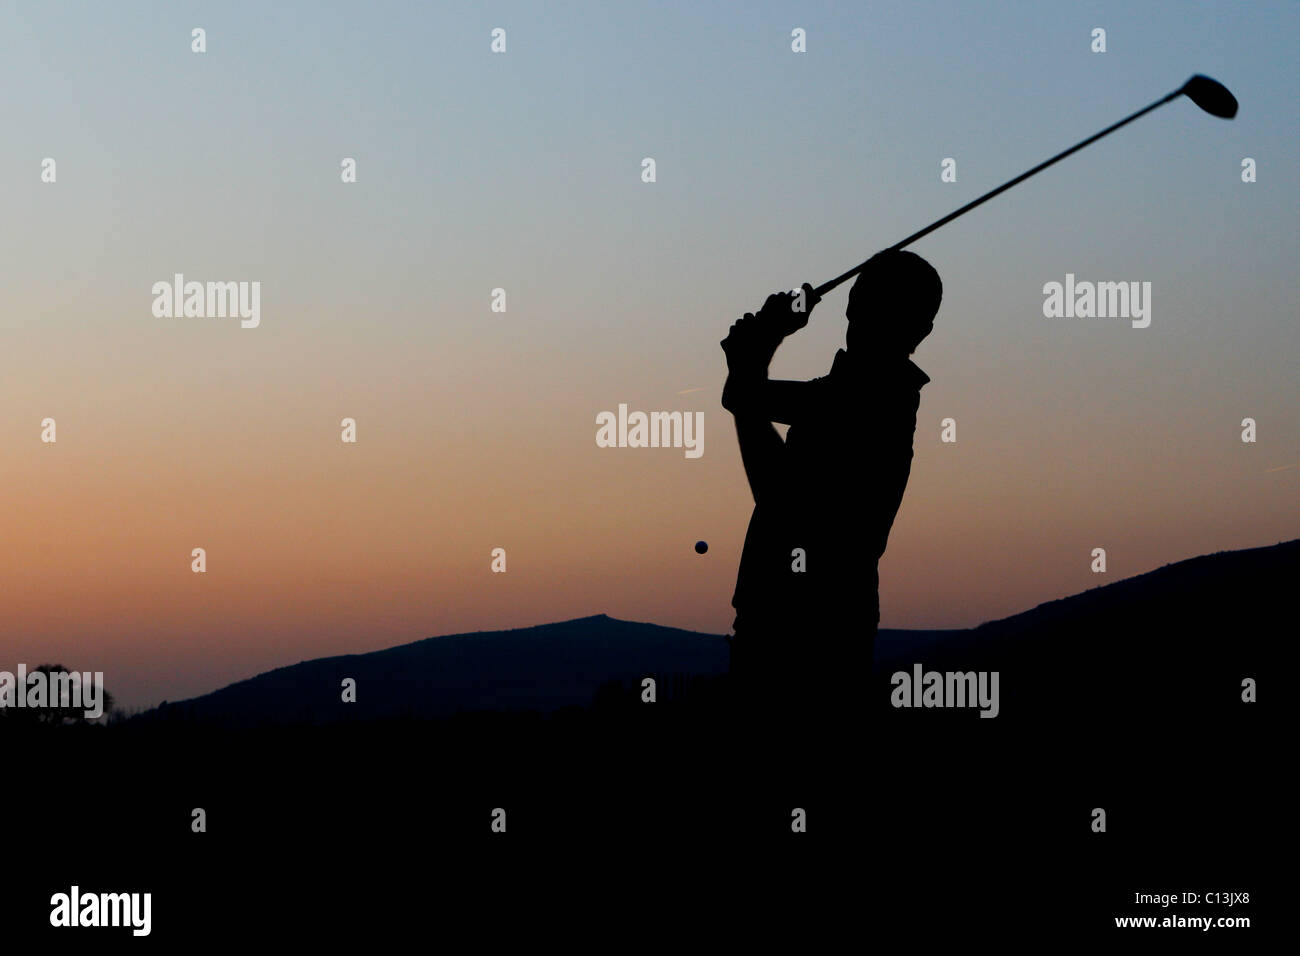 Man playing golf with a scenic landscape surrounding him as the sun sets - Stock Image